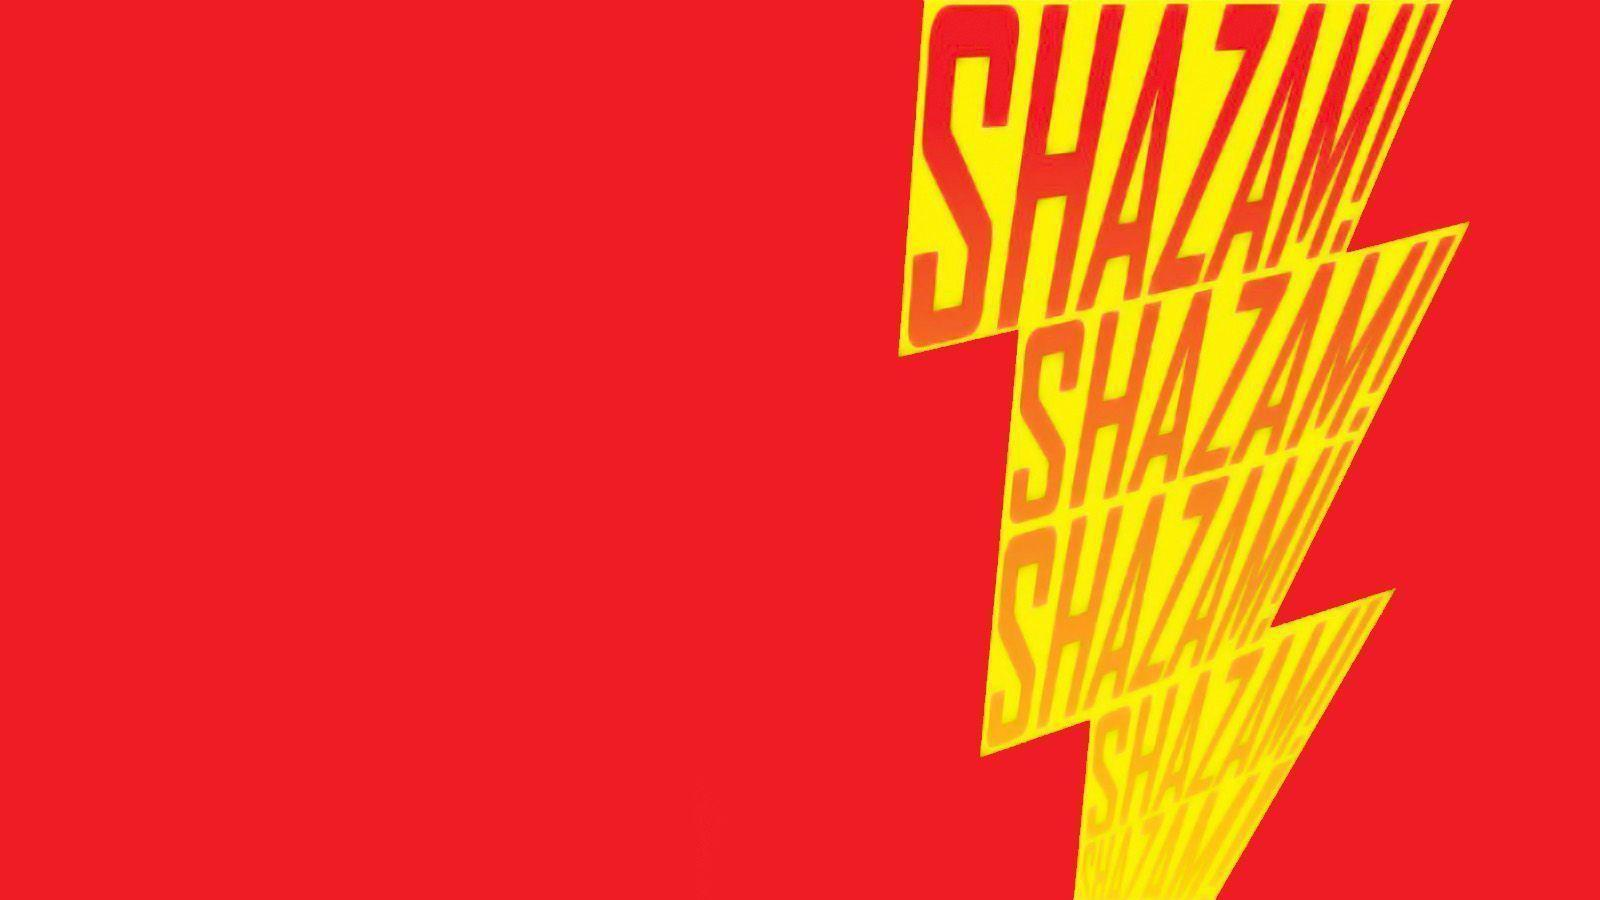 1600x900 - Shazam! Wallpapers 19